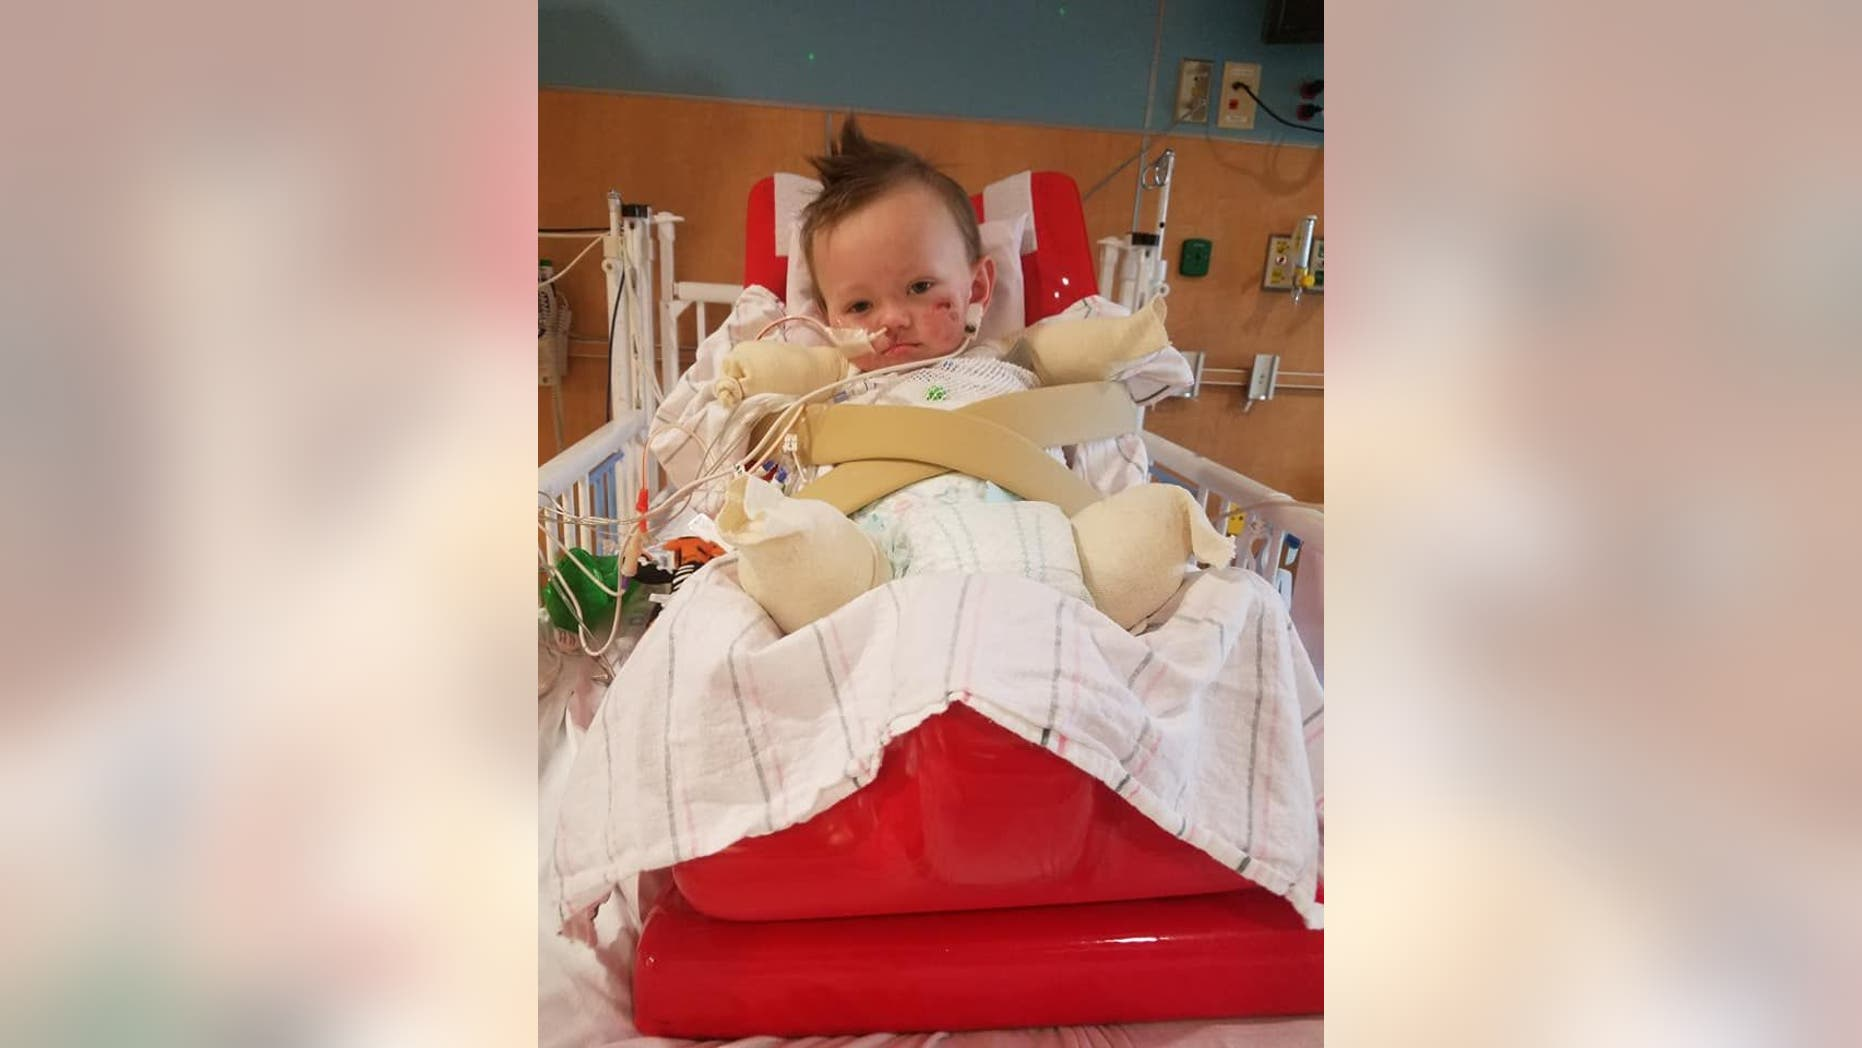 Jeremiah, 2, lost the lower half of all four limbs after he contracted a mysterious life-threatening bacterial infection.